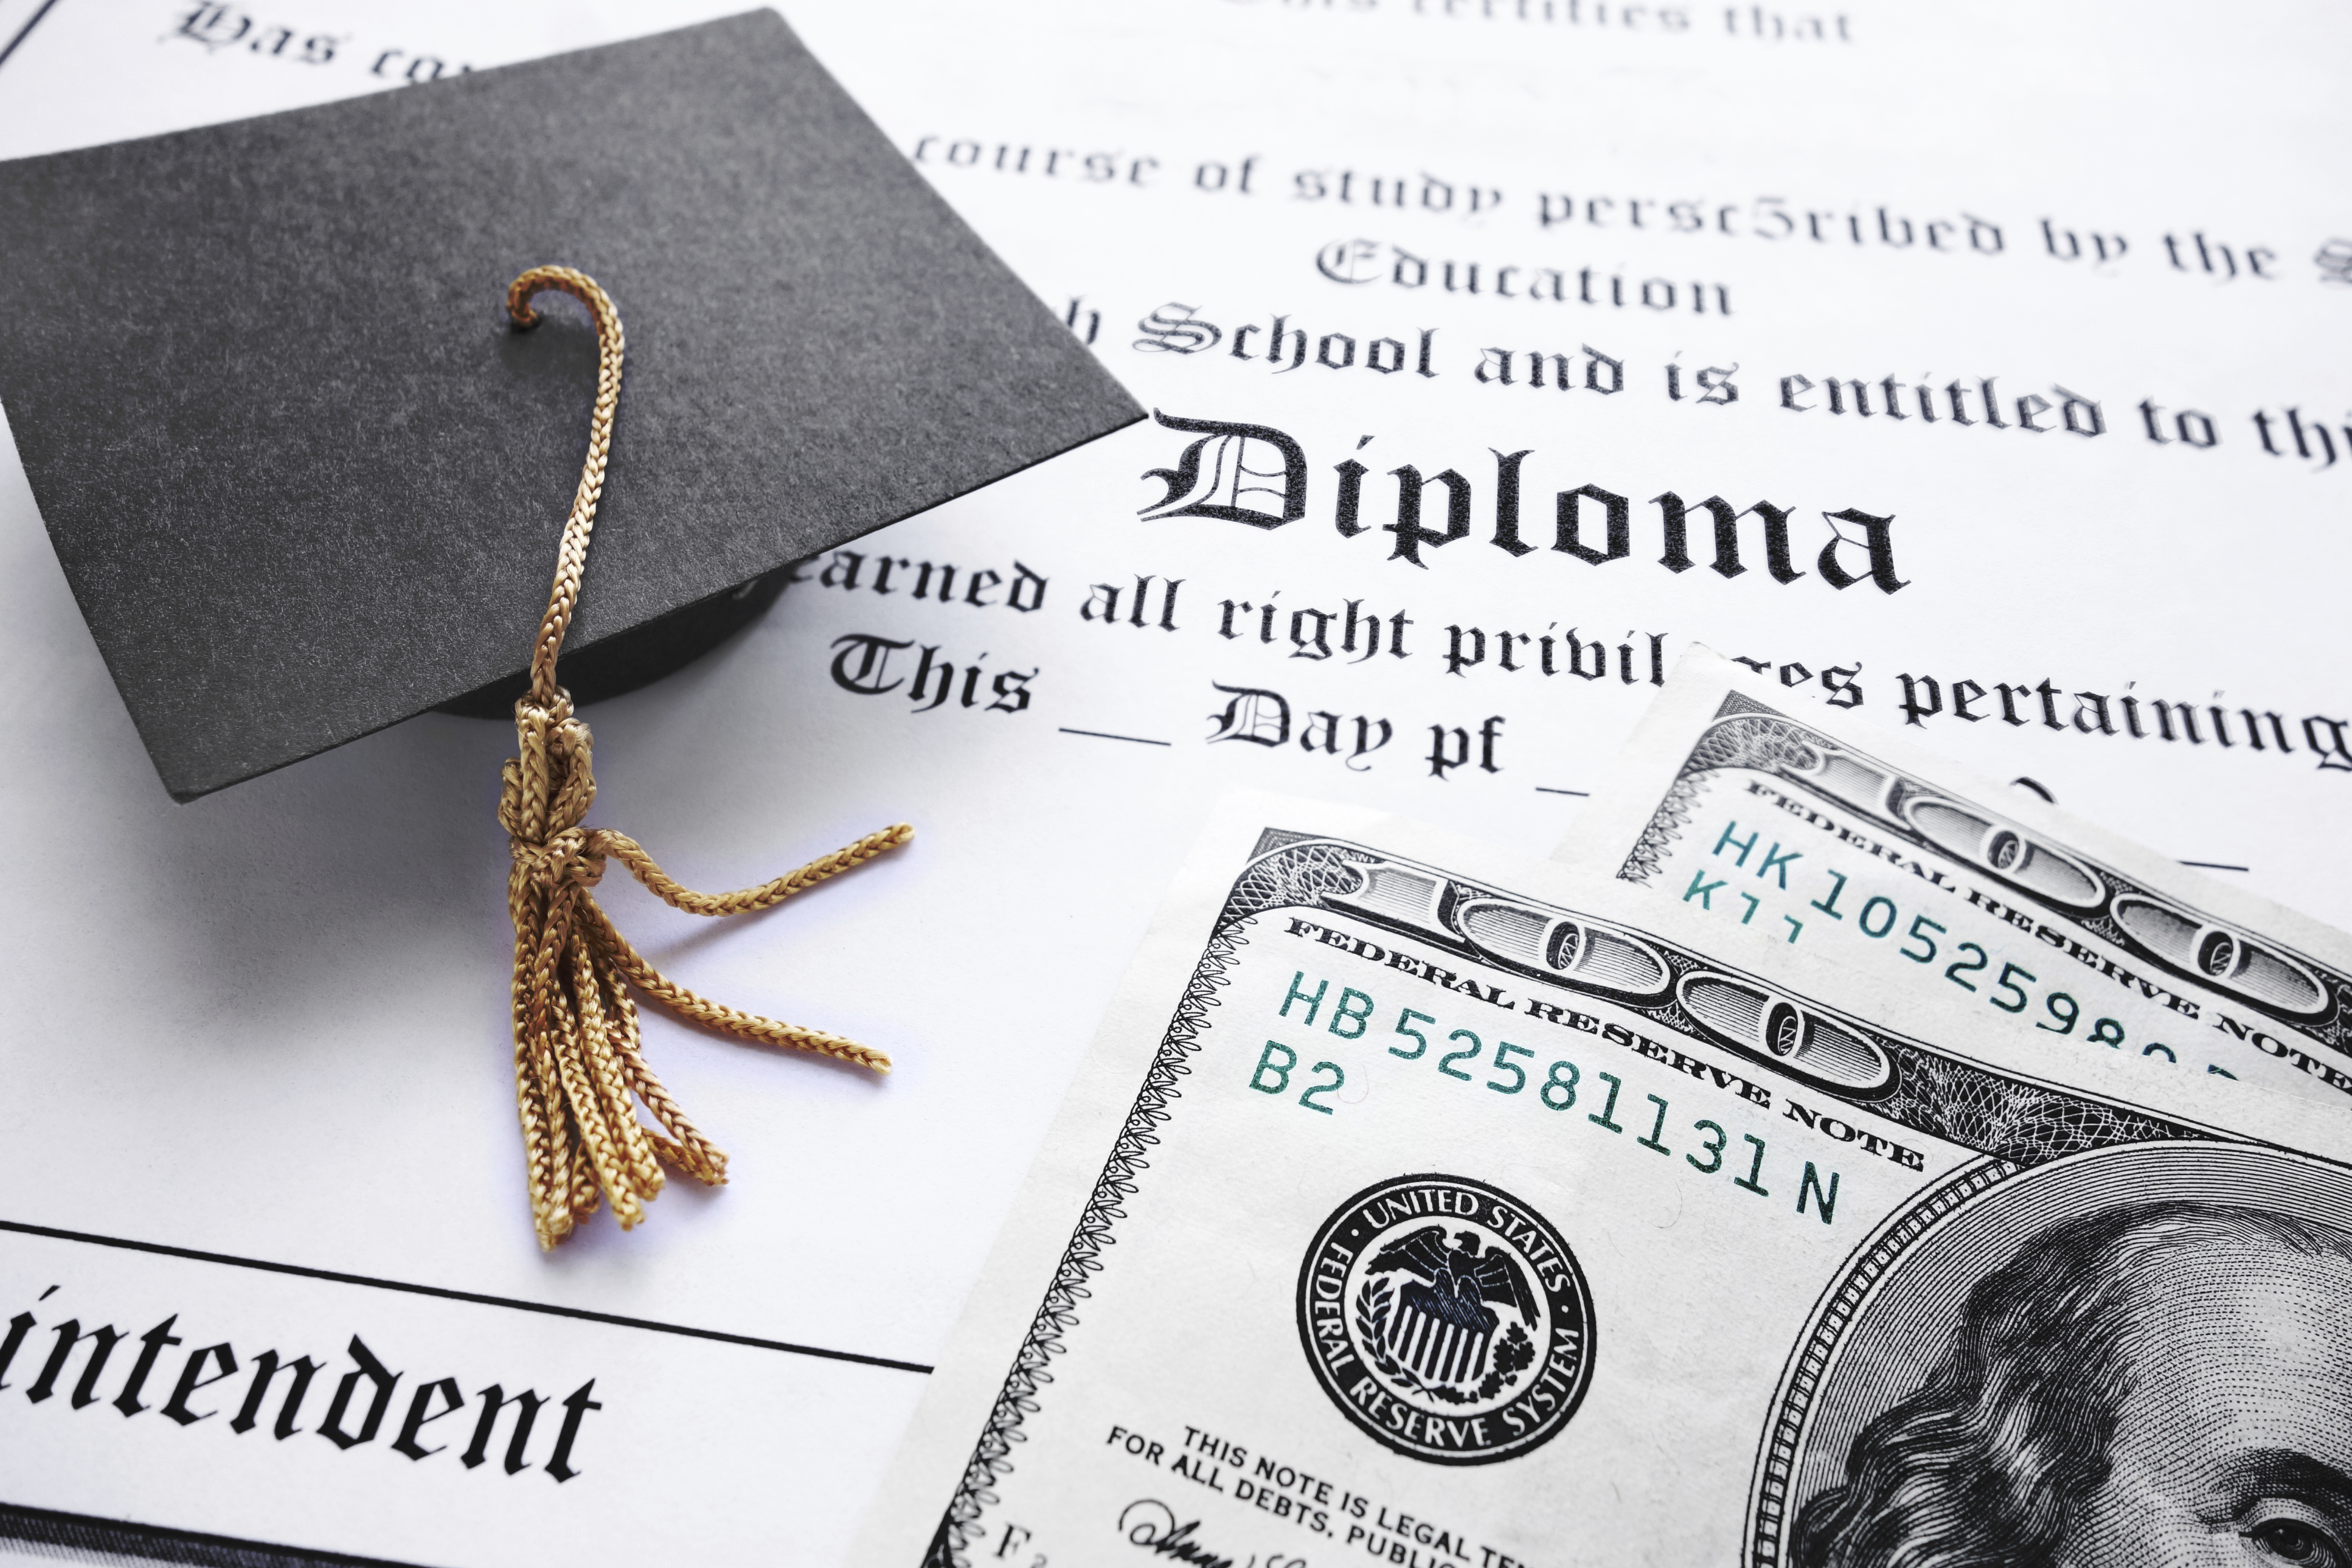 study private colleges up tuition discounts paying for college  study private colleges up tuition discounts paying for college us news